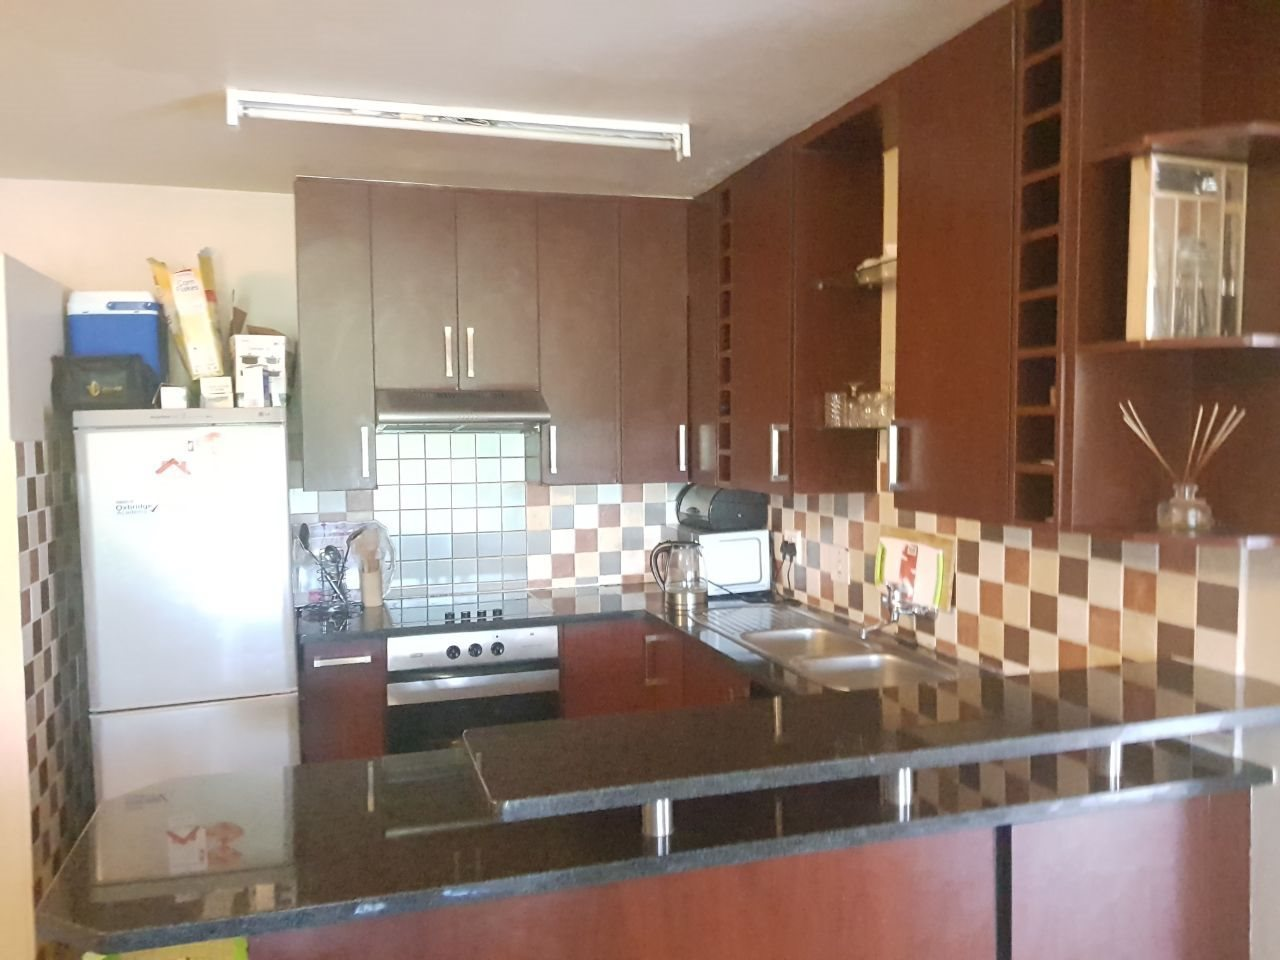 Meer En See property for sale. Ref No: 13590947. Picture no 7